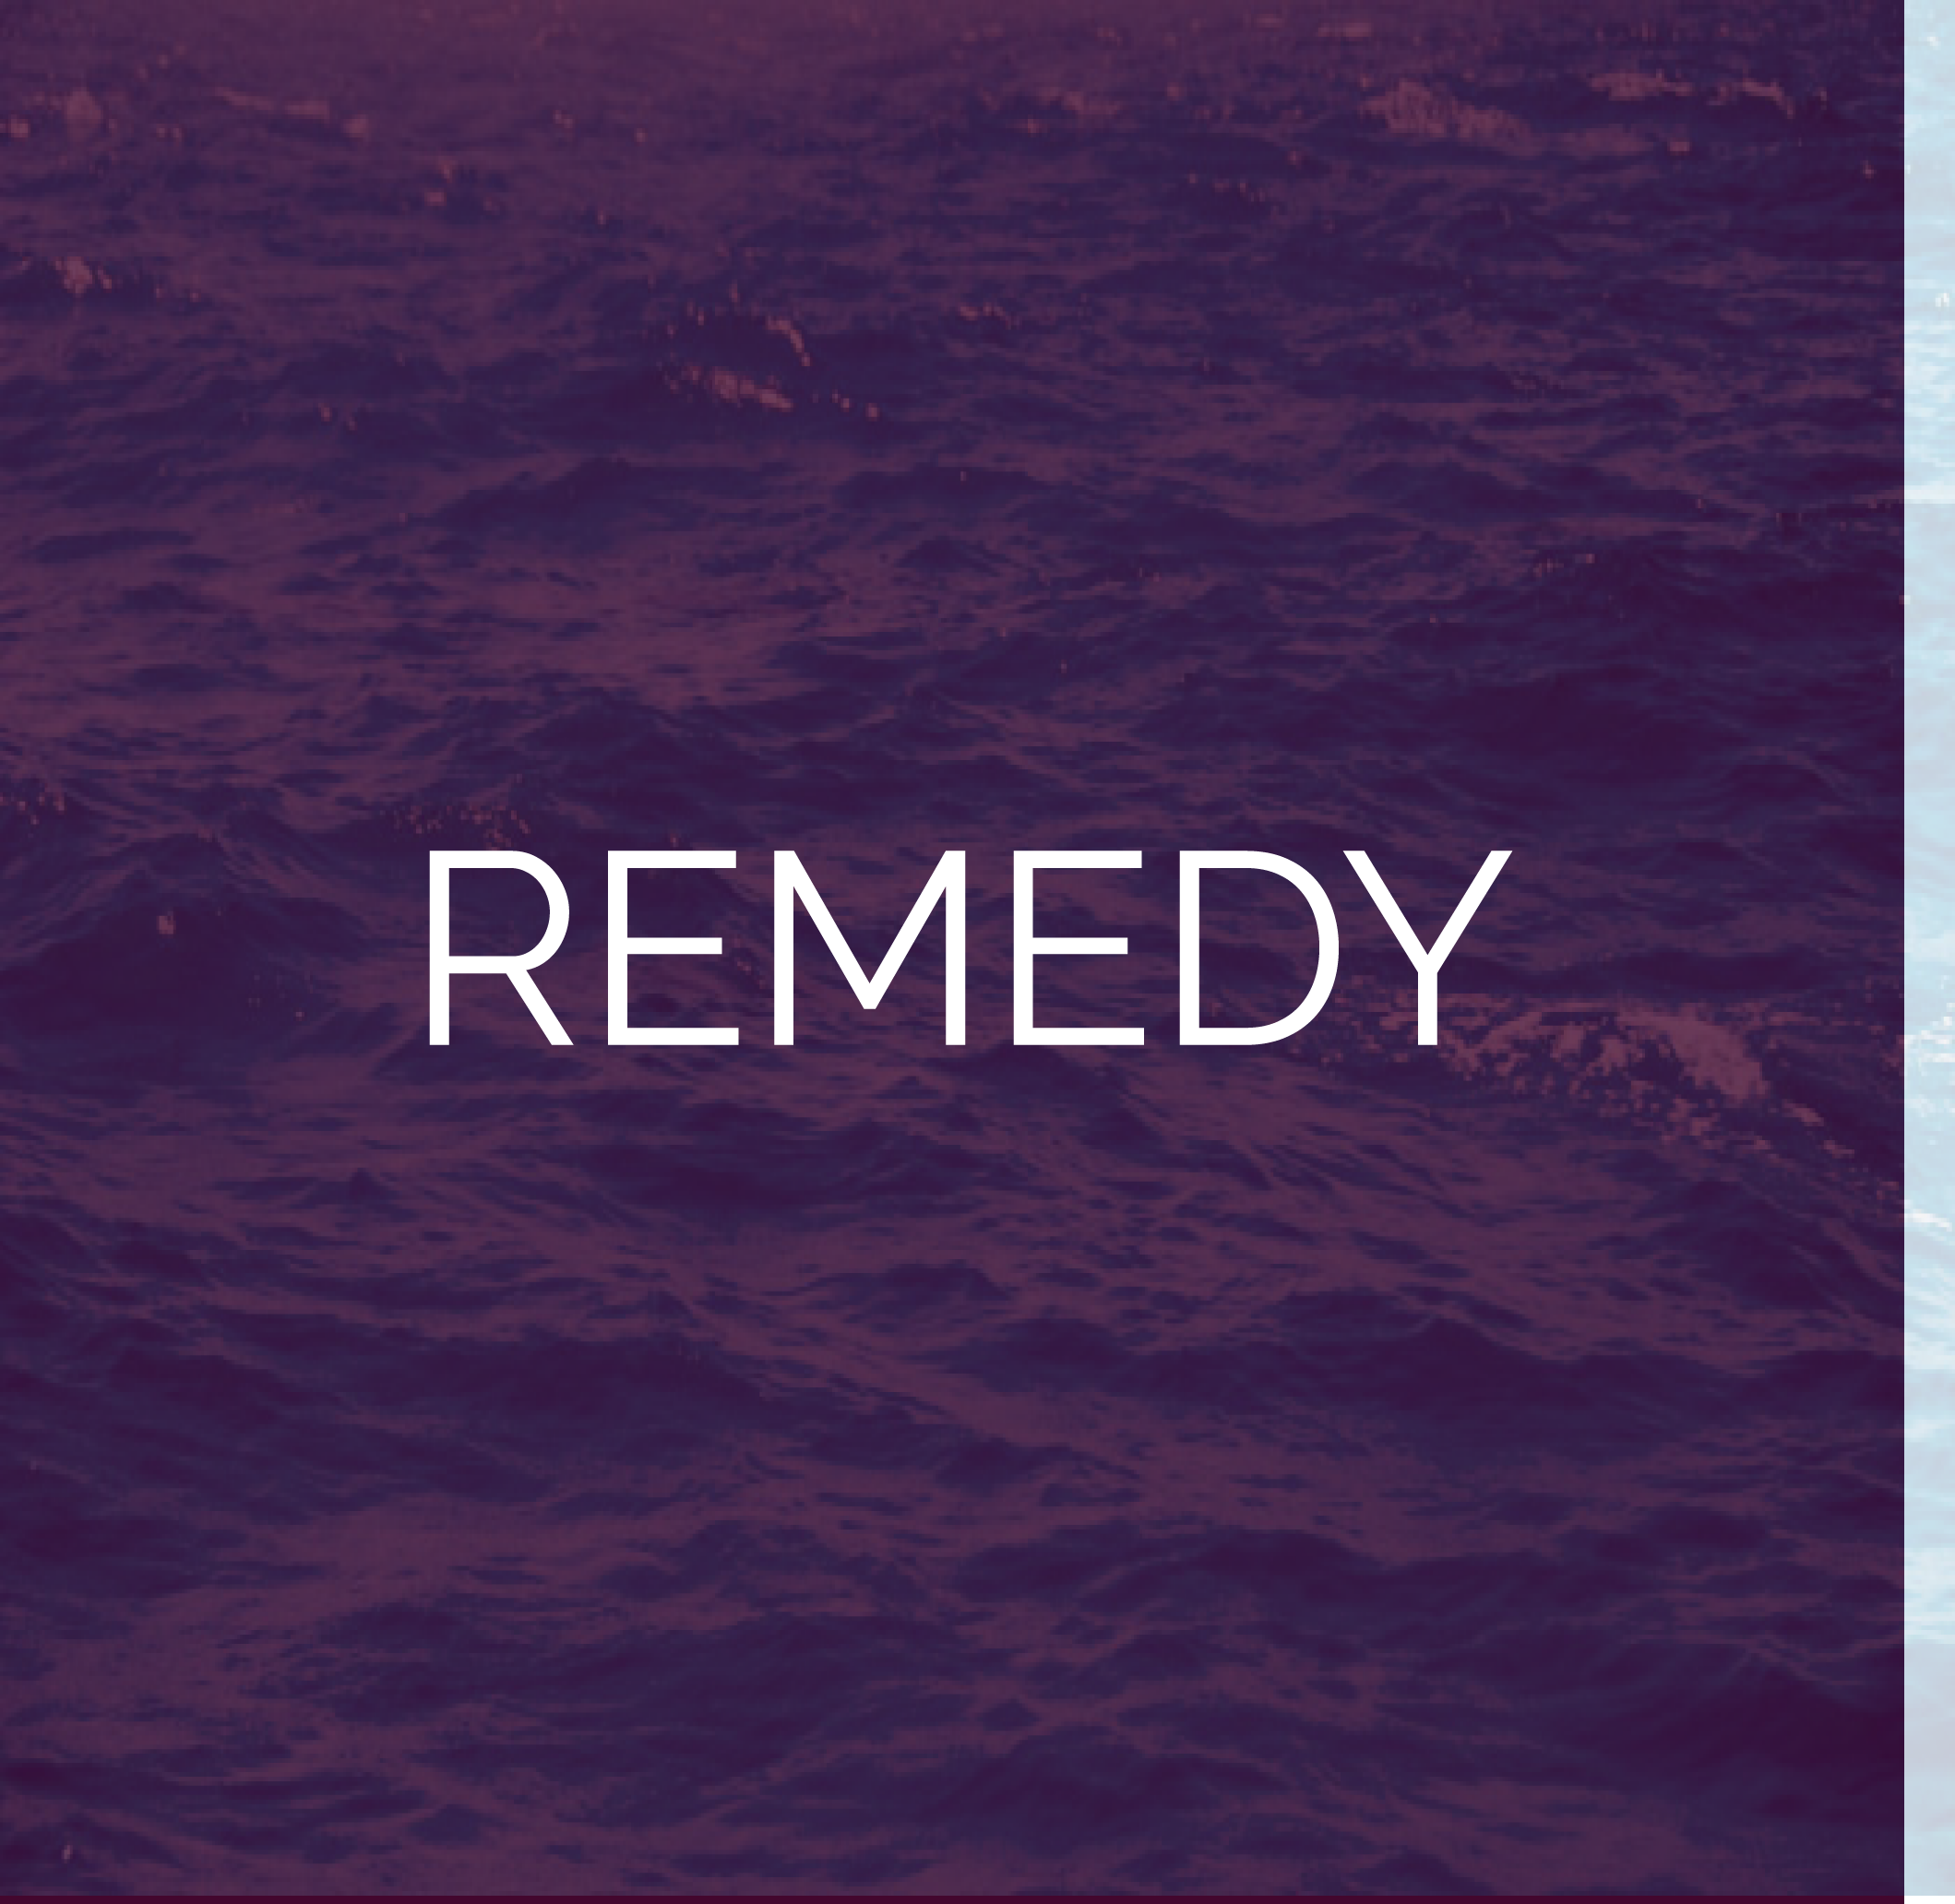 An icon representing Remedy